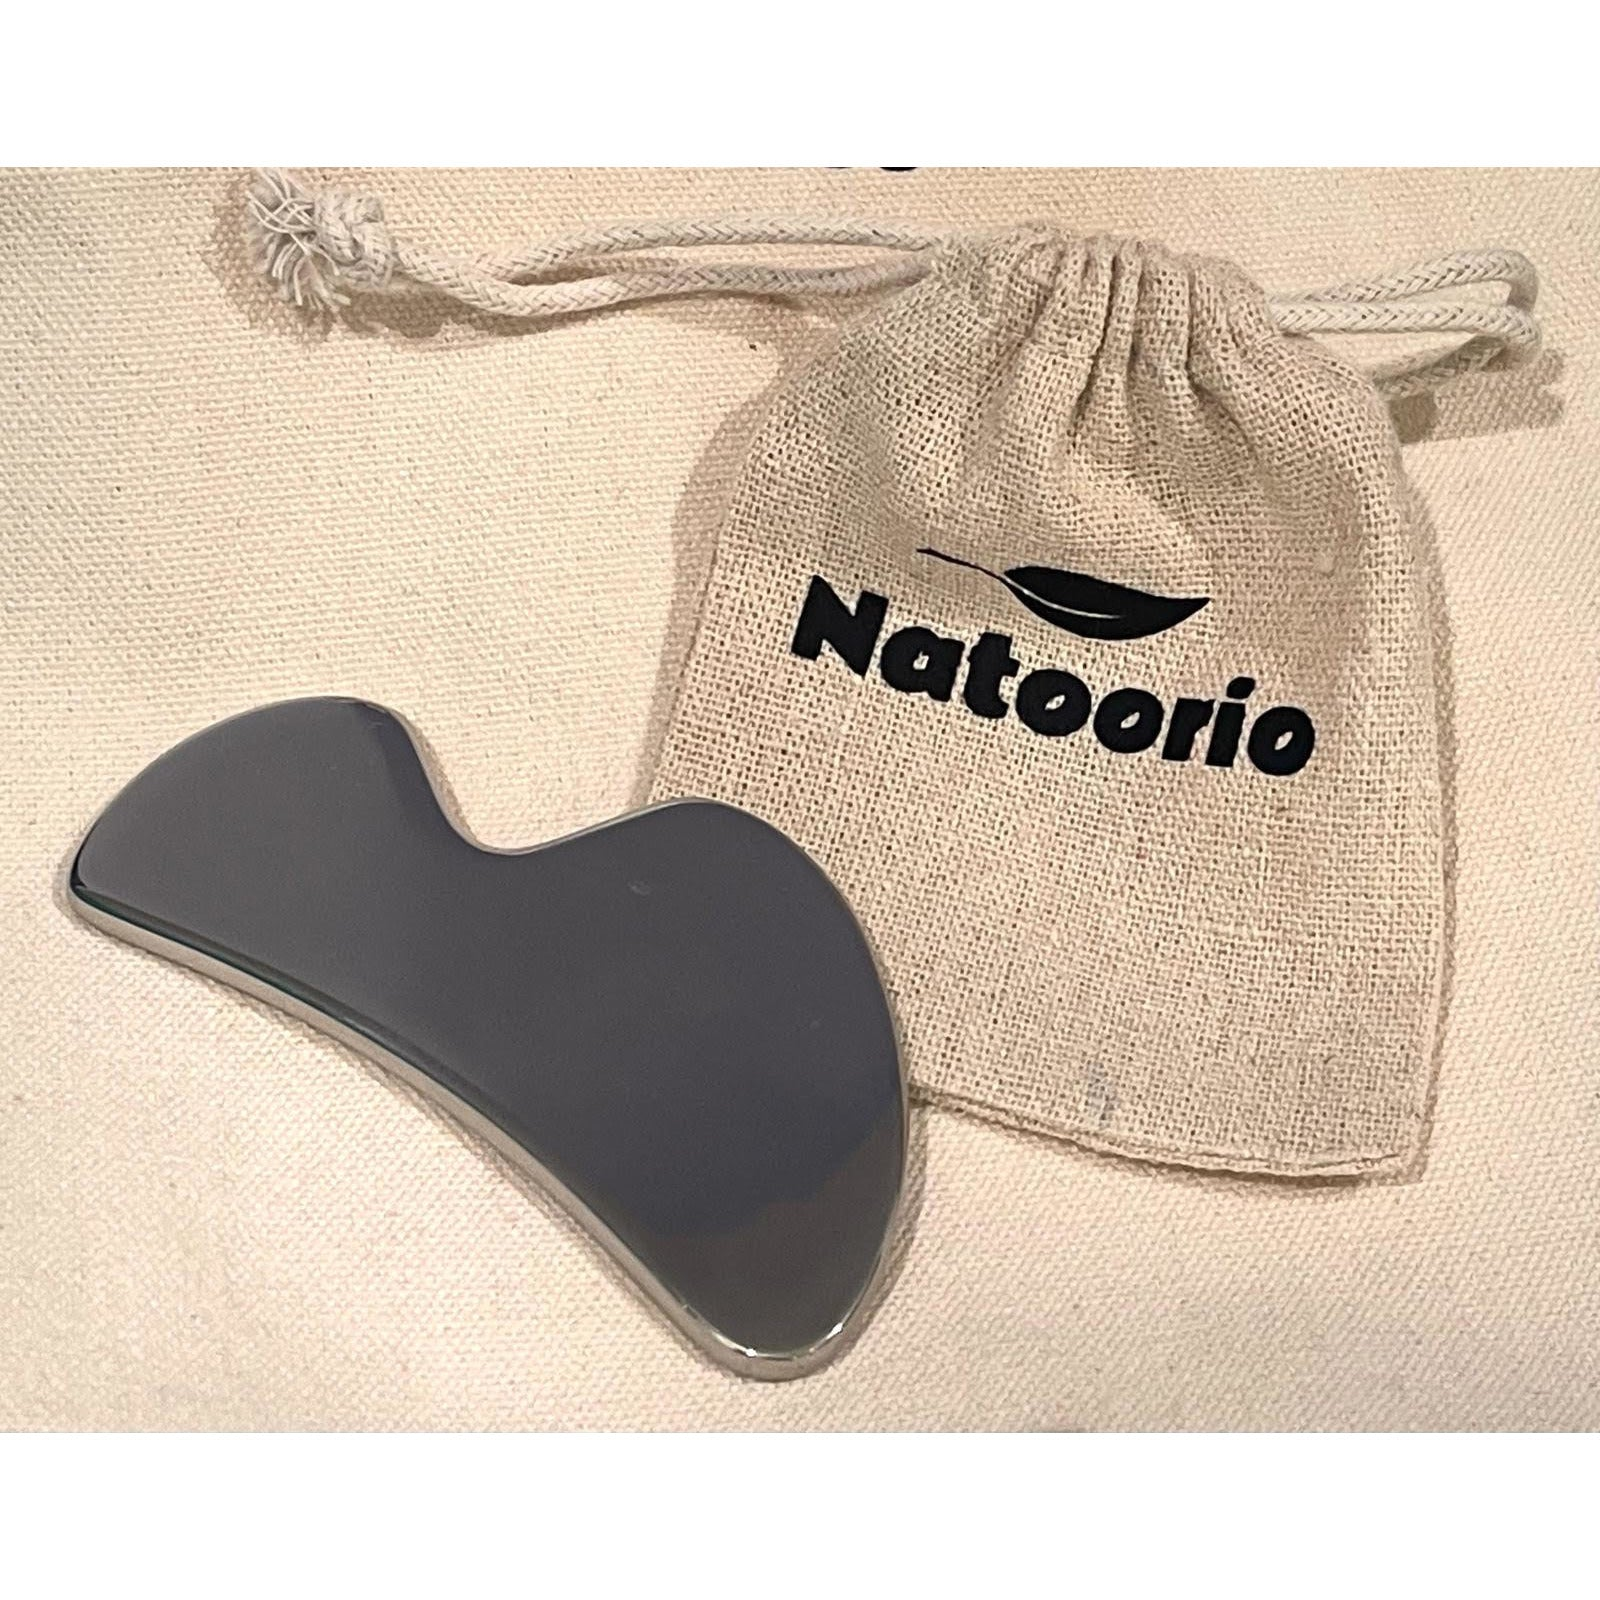 Gua Sha for Face and Body in Medical Grade Stainless steel - Relieves muscle tension - natoorio